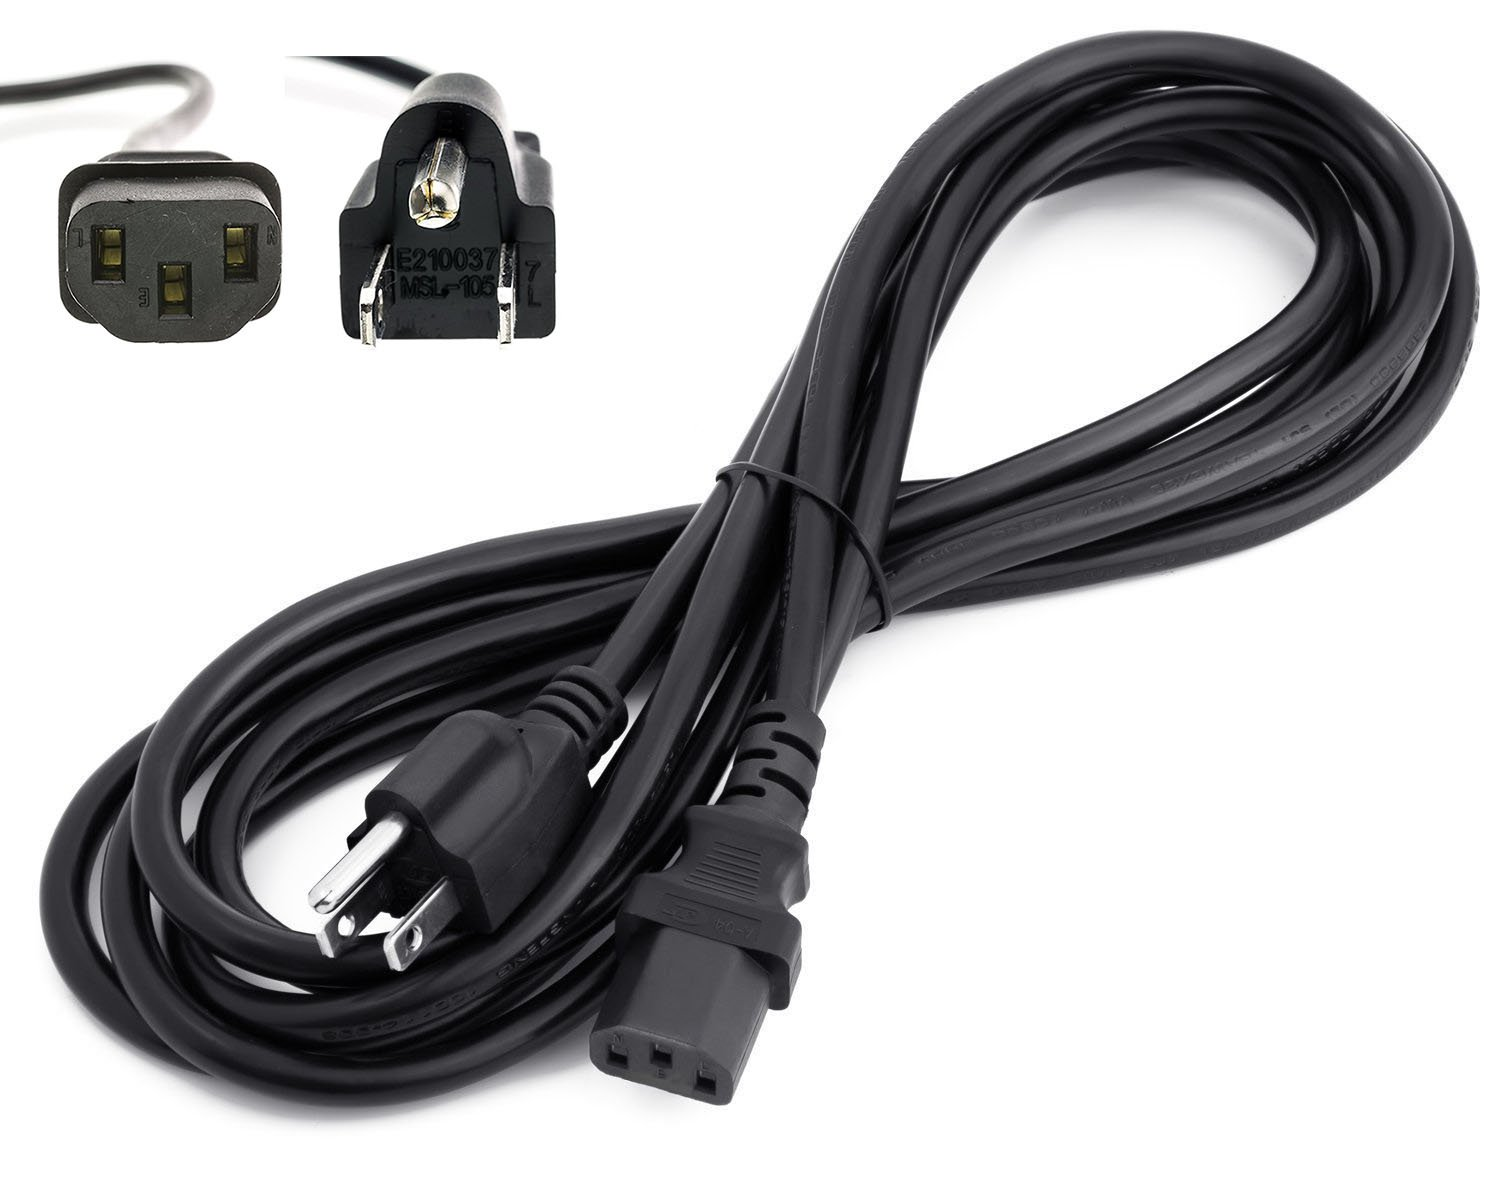 Amazon.com: Amamax® 15 Feet Extra Long AC Power Cord Cable for VIZIO ...